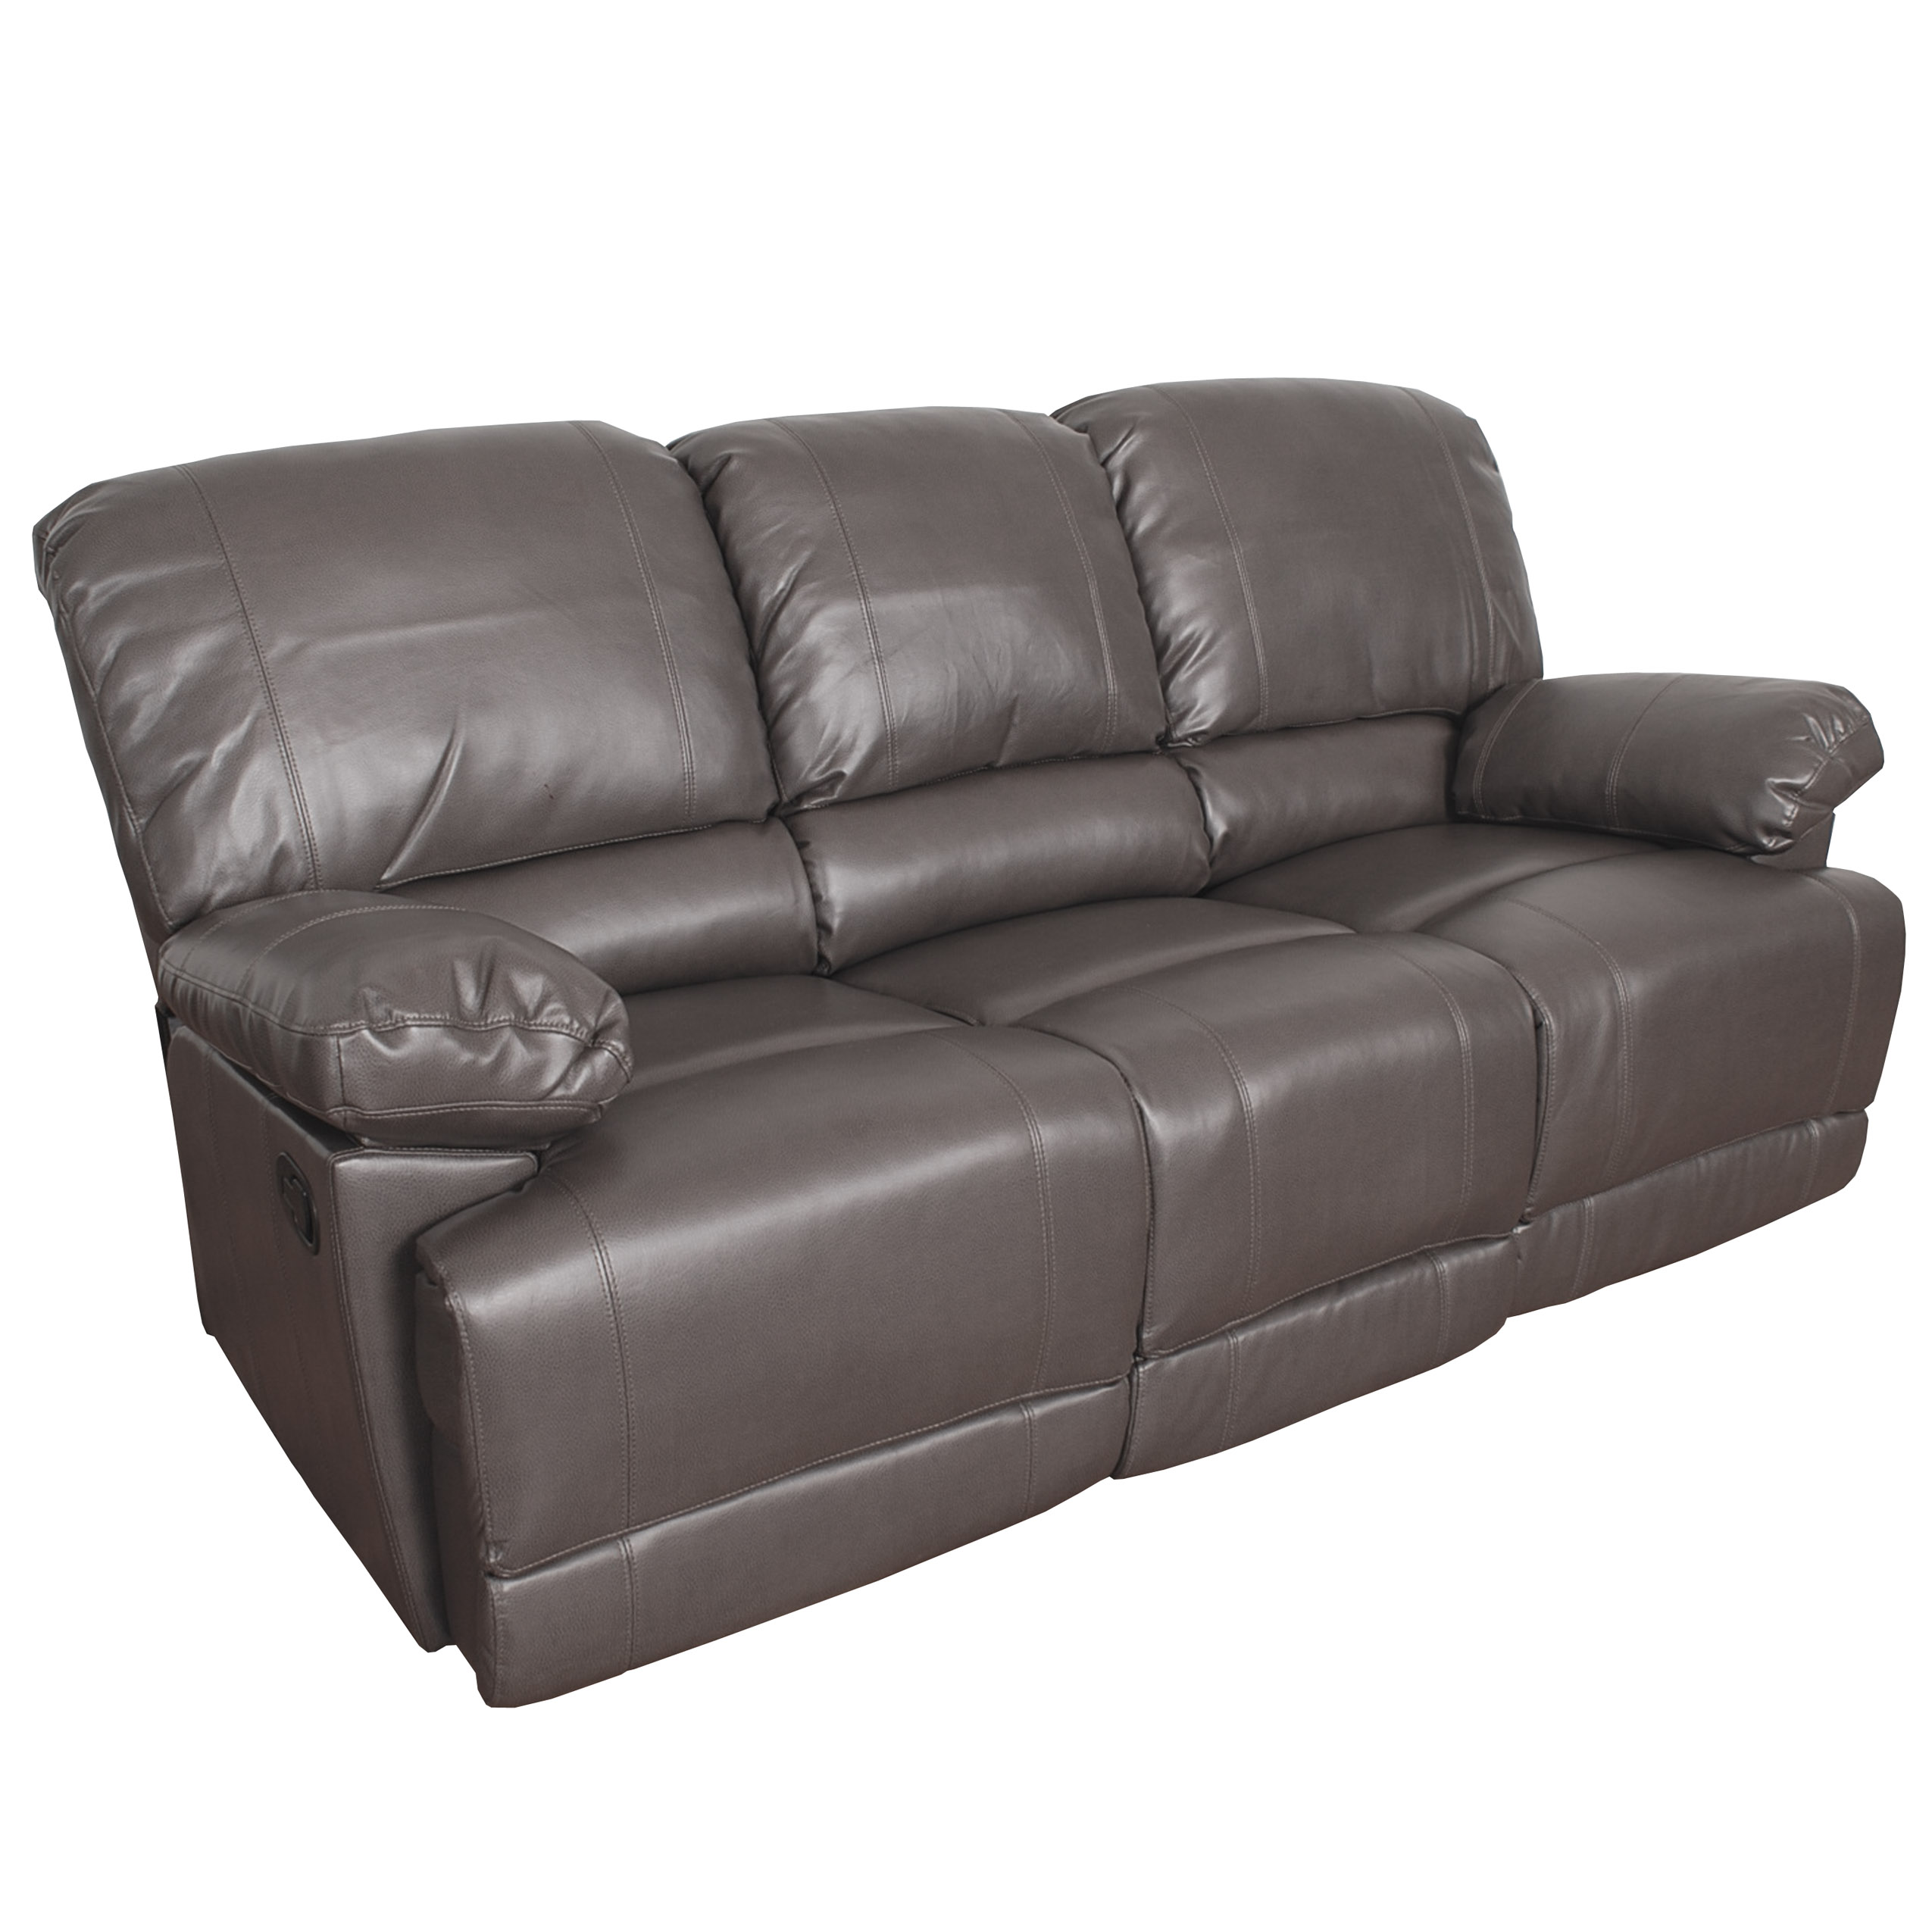 angus bonded leather reclining sofa top brands in india 2017 corliving walmart